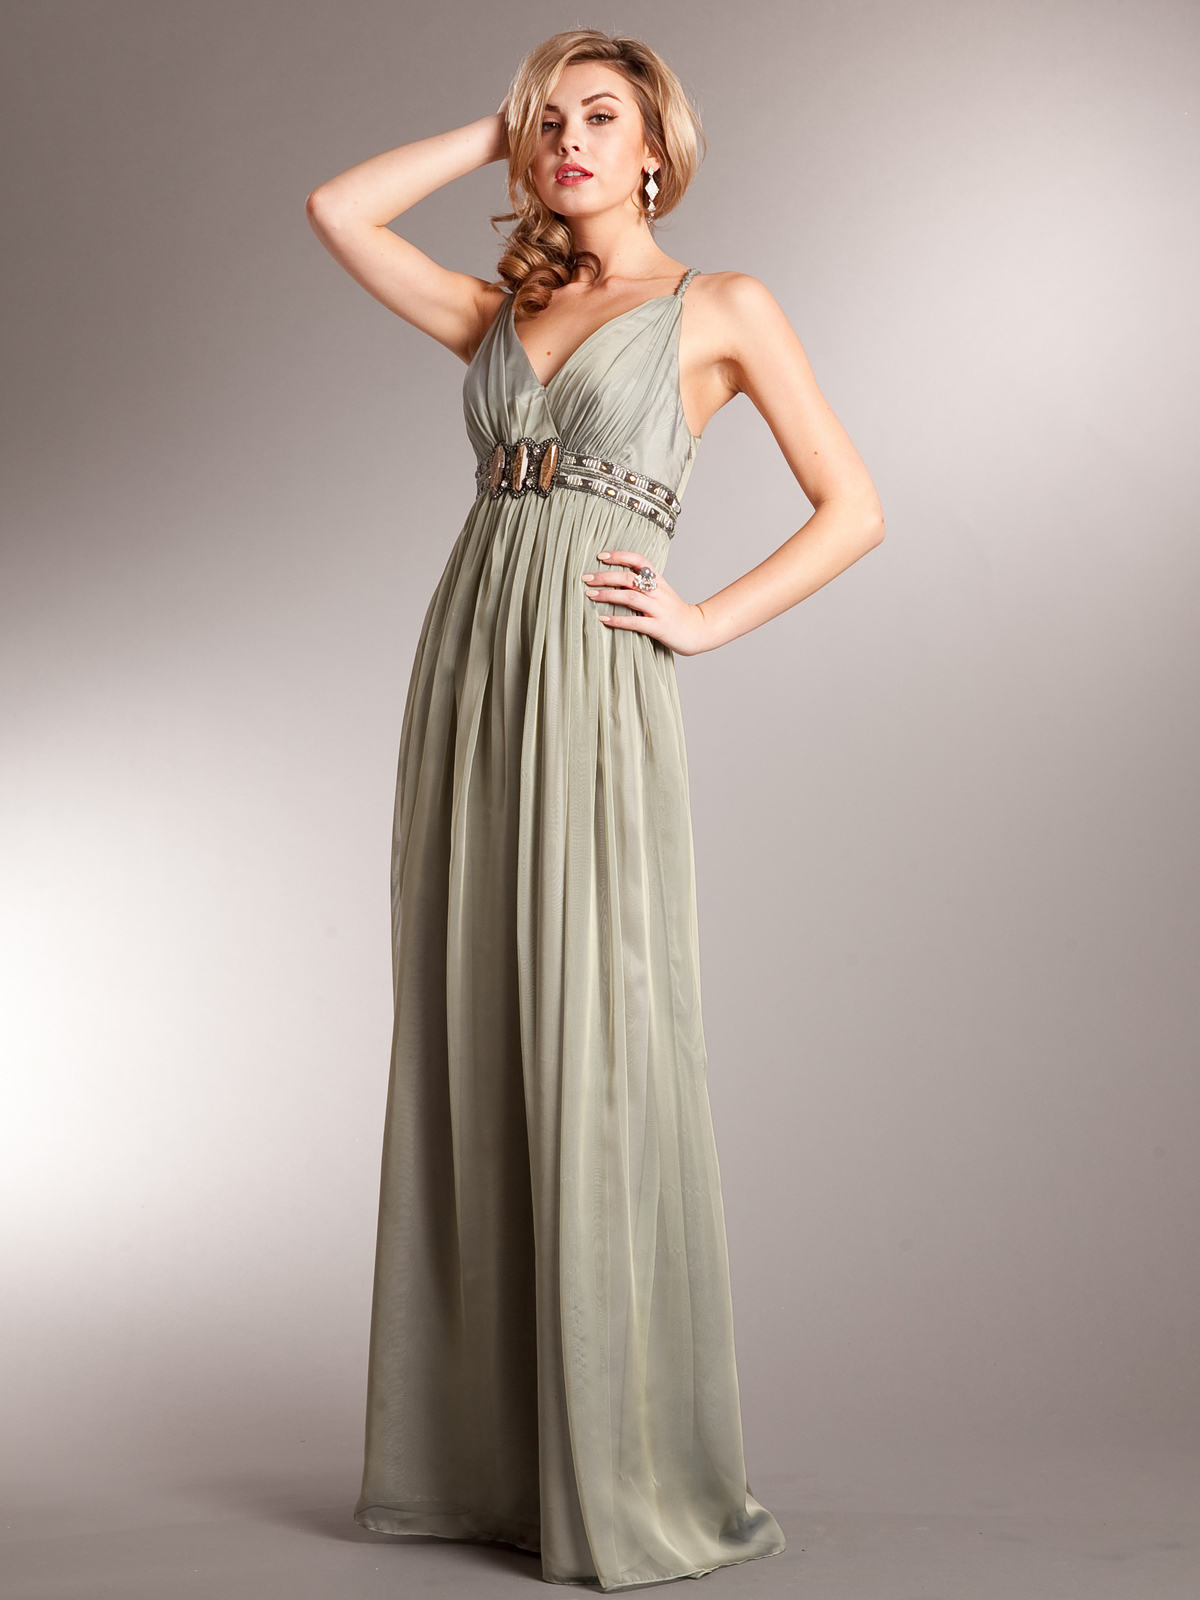 How to choose Grecian Gown - 24 Dressi